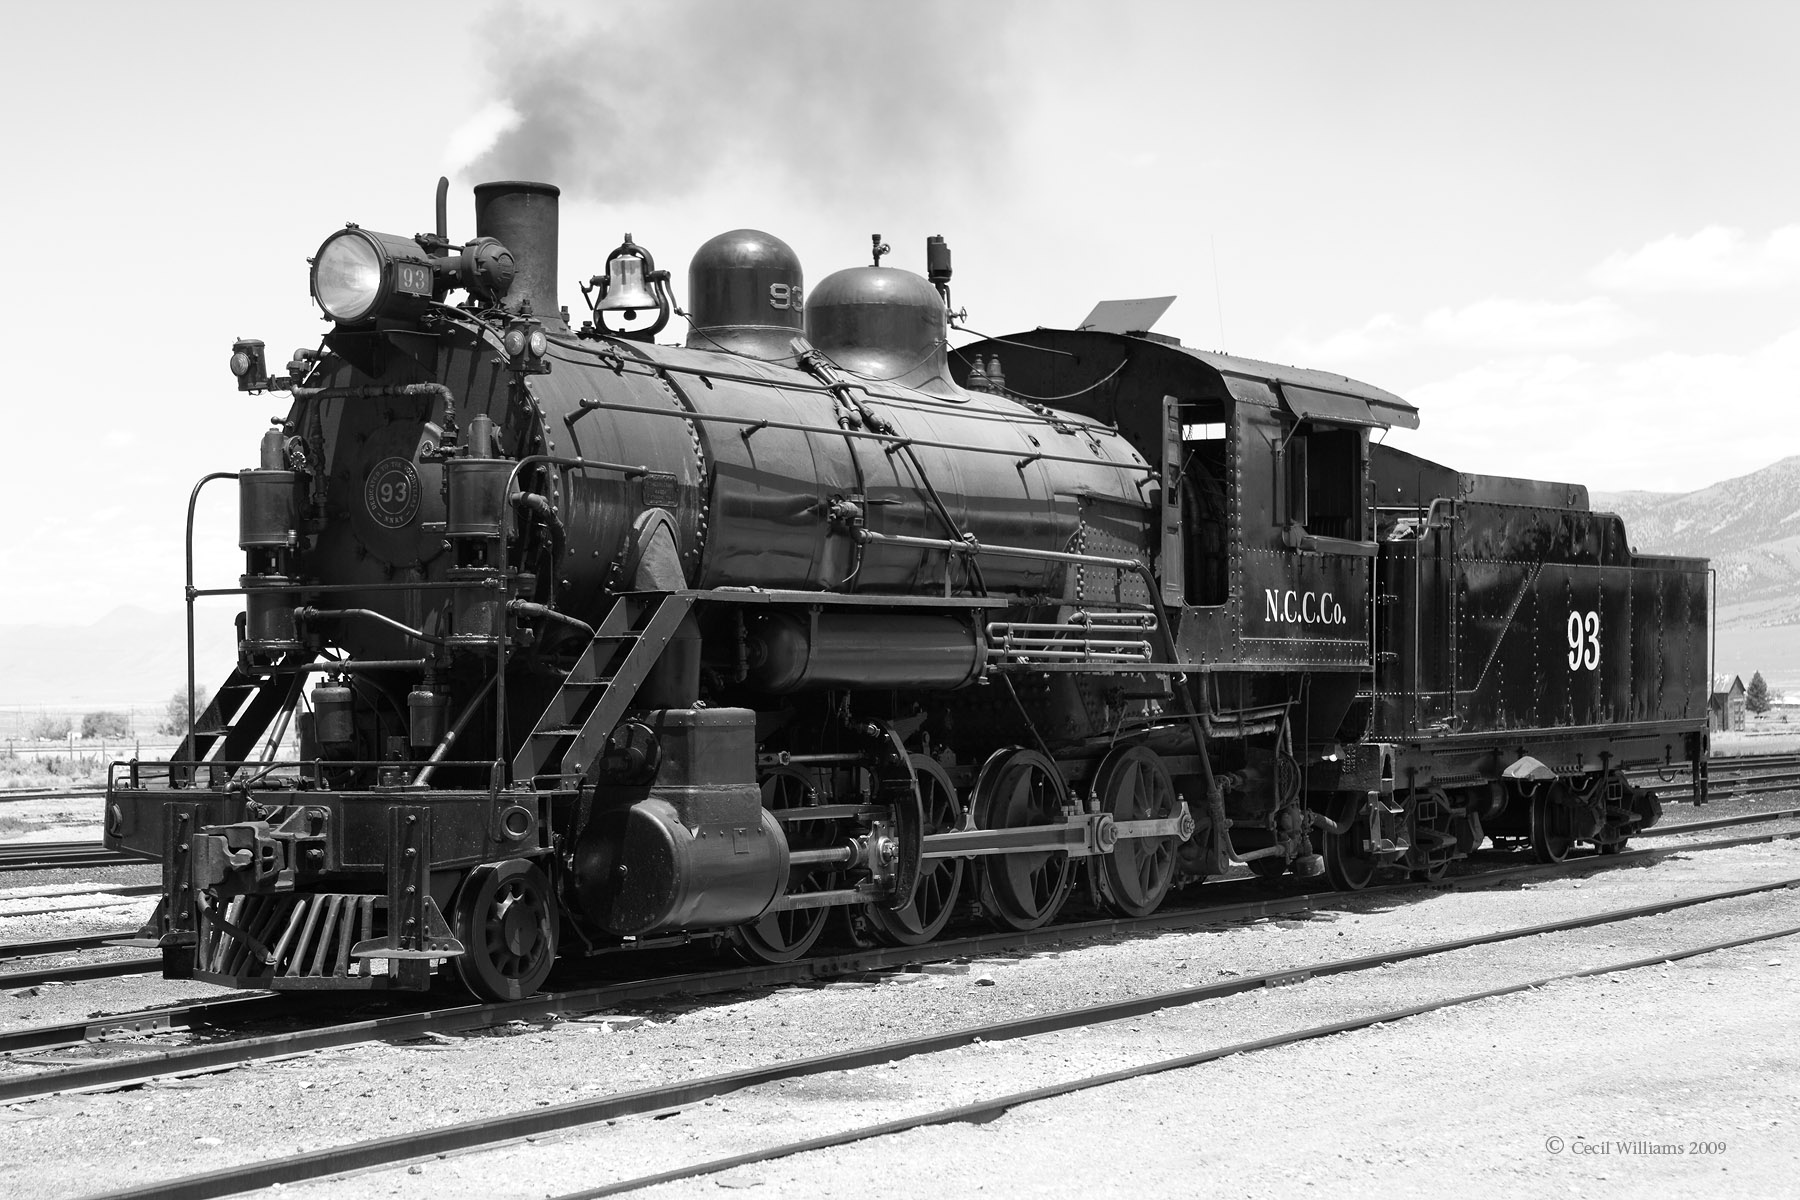 steam locomotive 93 in ely nevada built in 1909 description 1299 steam